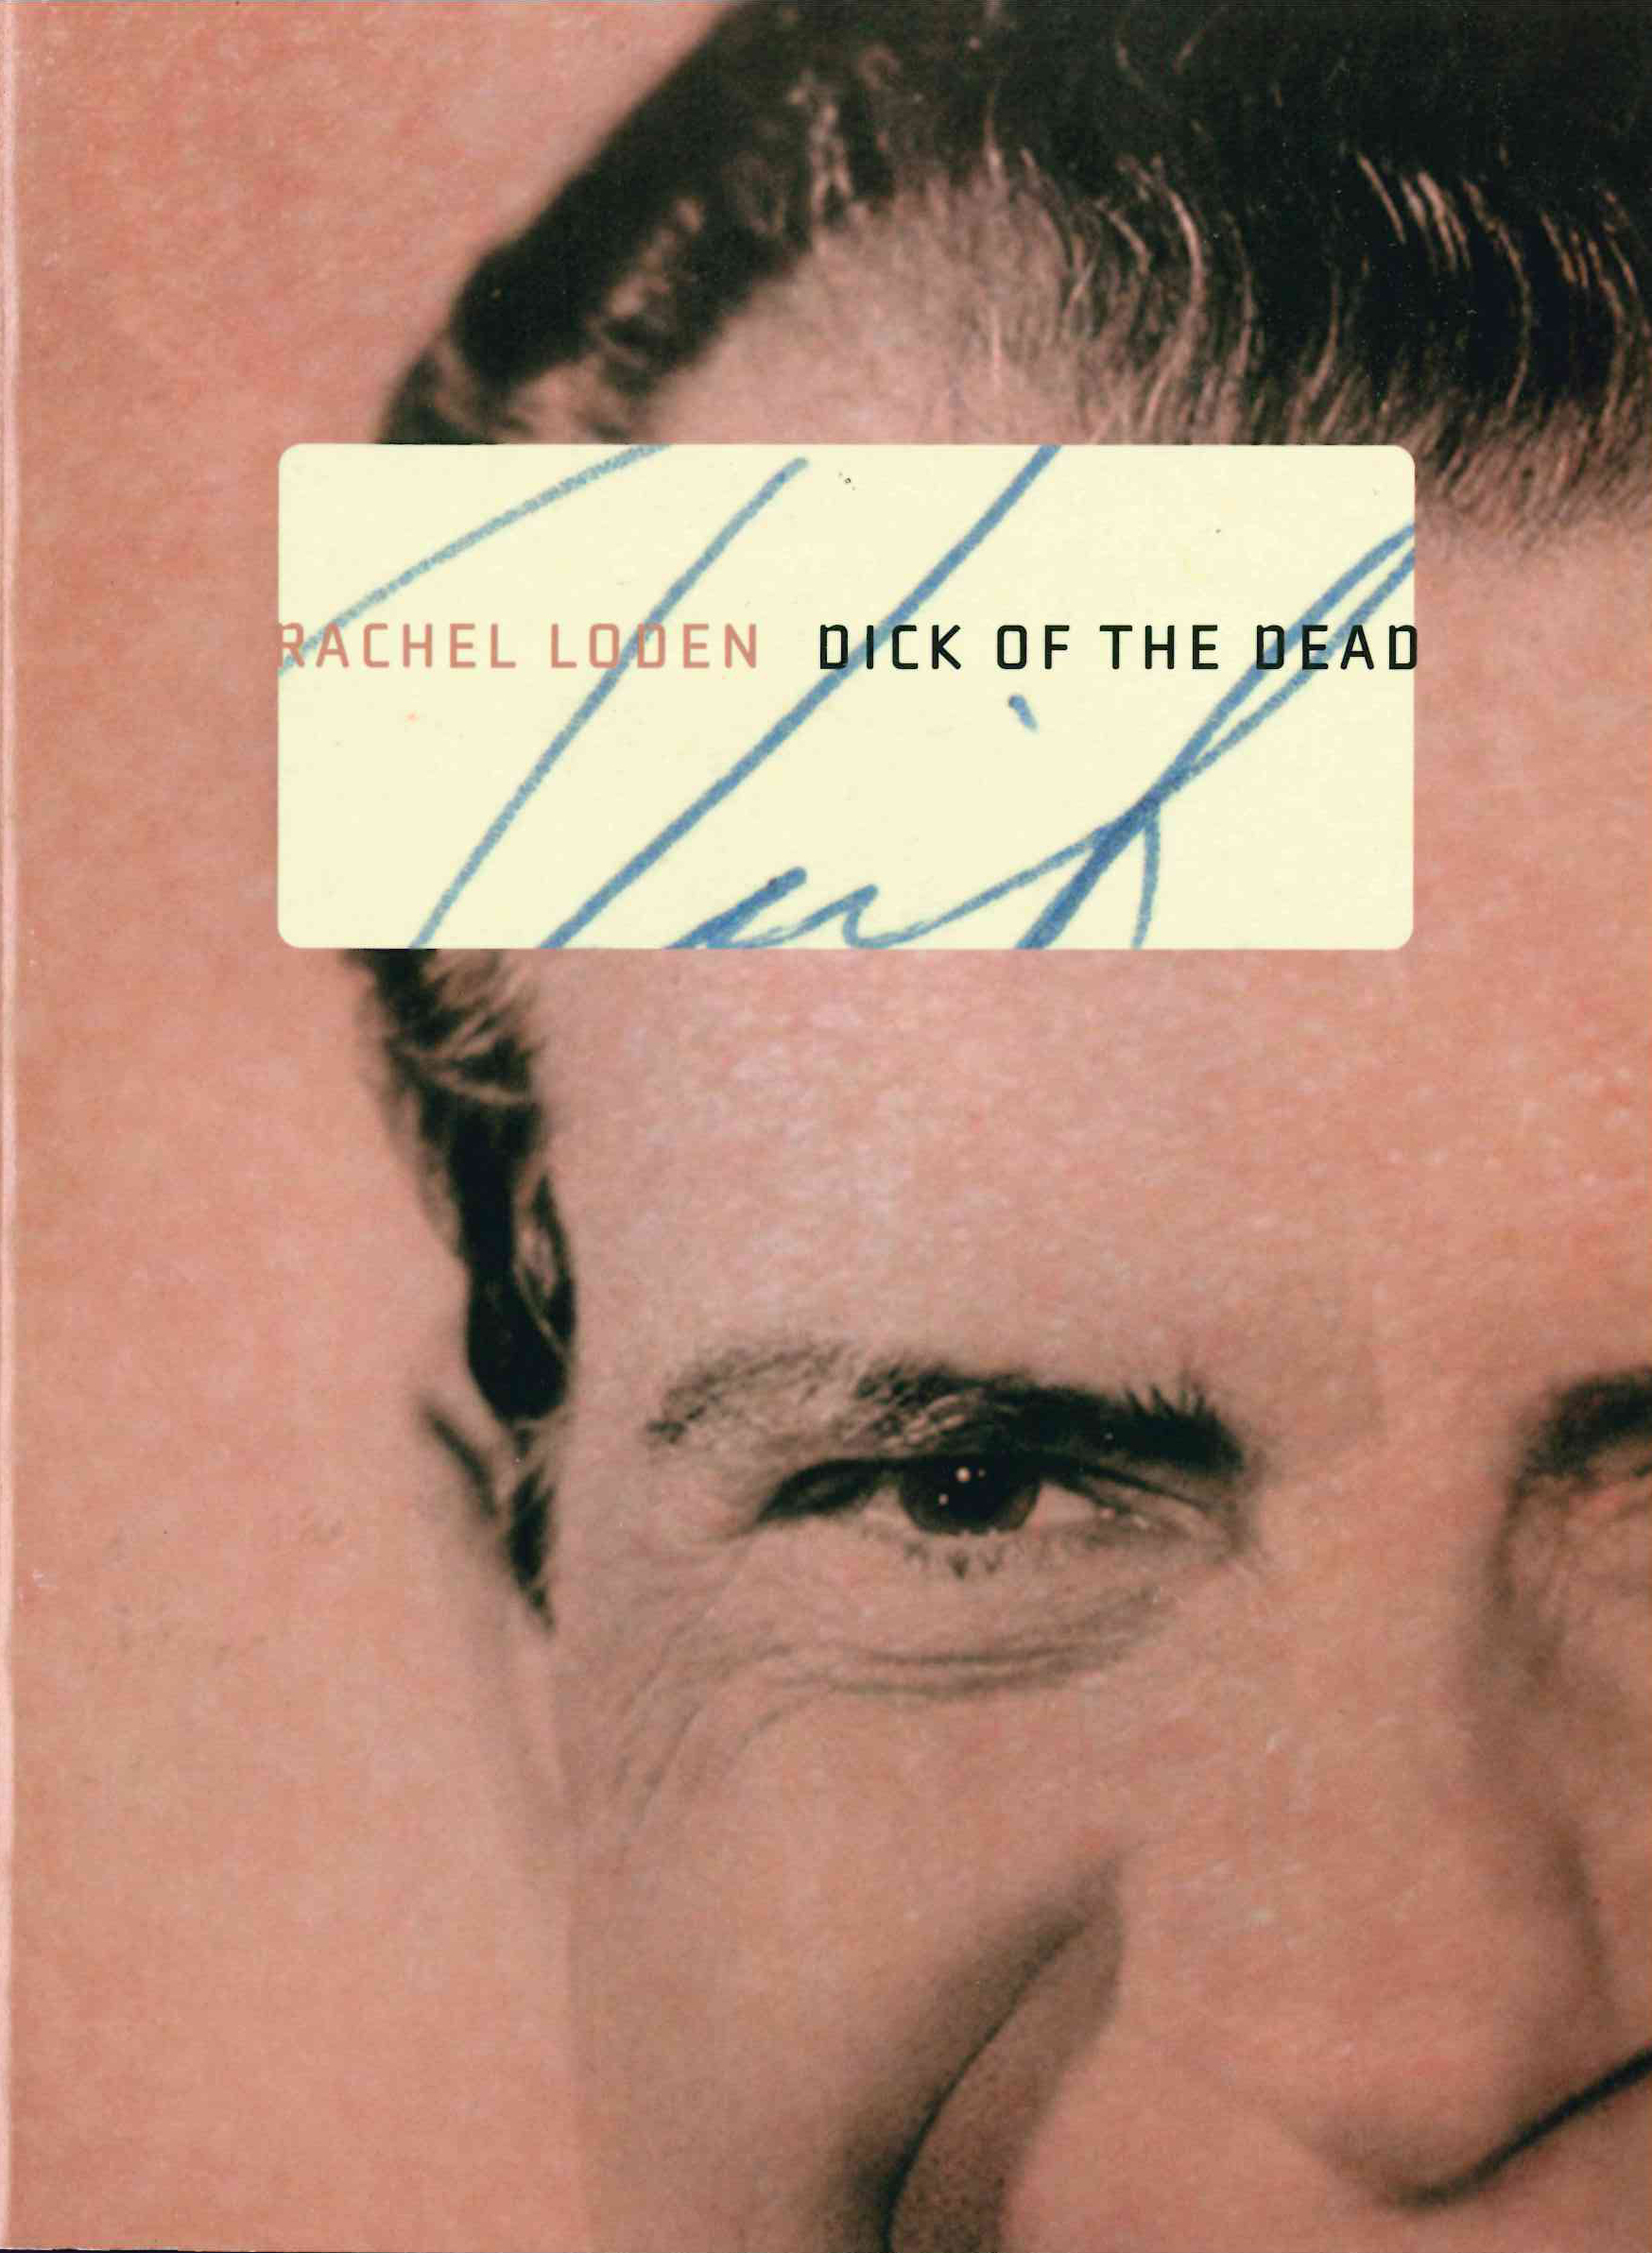 Dick of the Dead | Rachel Loden | Ahsahta Press